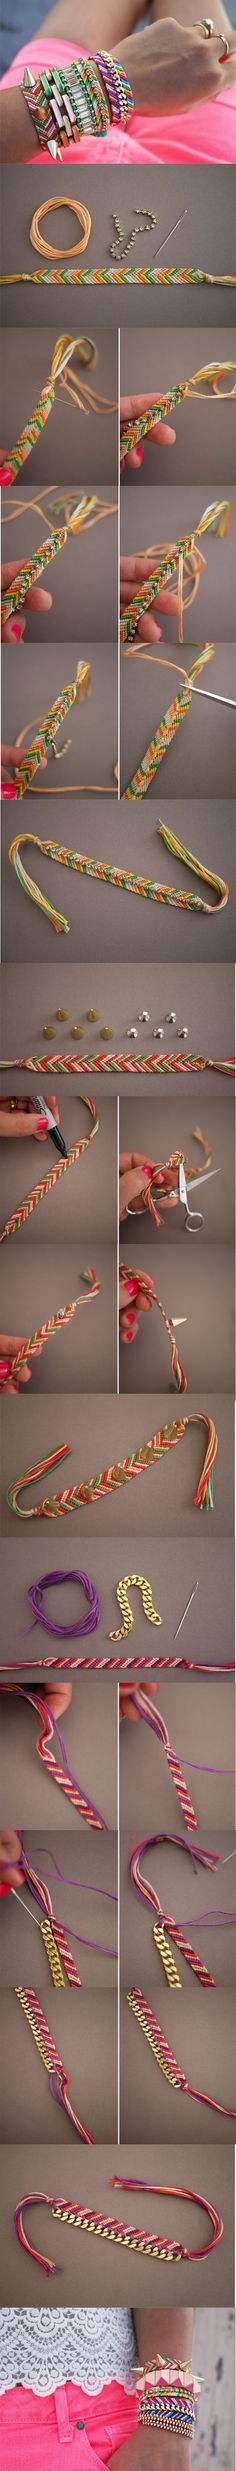 DIY: 5 Bracelets That Will Be Fashionable This Spring...  Never did learn how to do this in gradeschool.